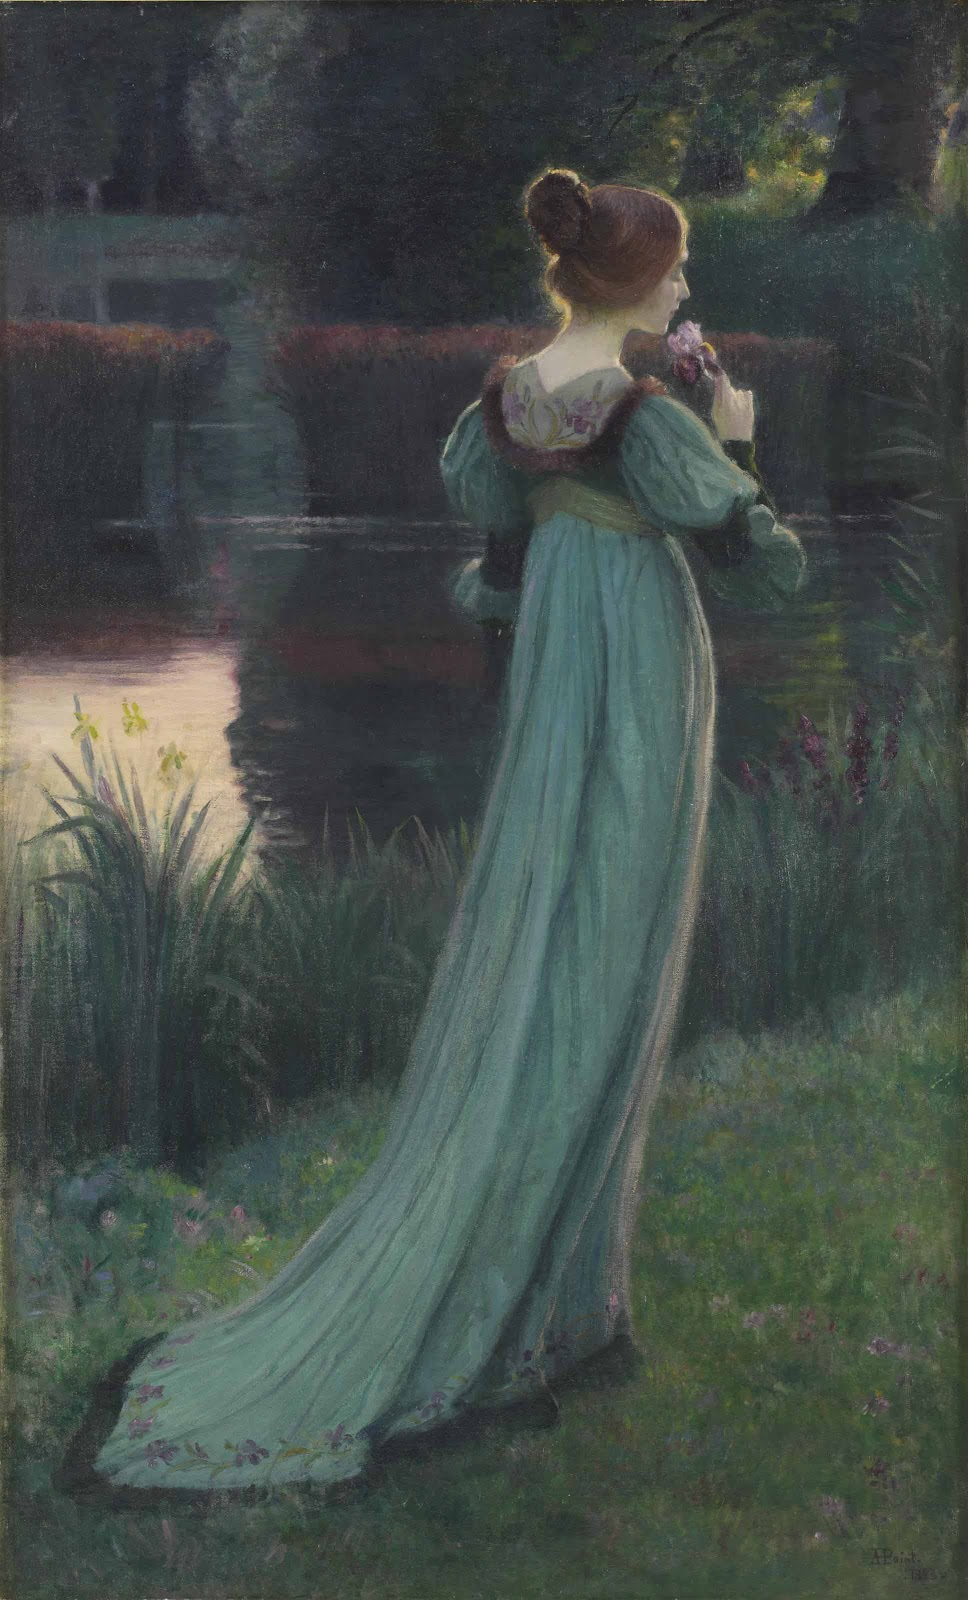 Armand Point Reminiscing by the pond